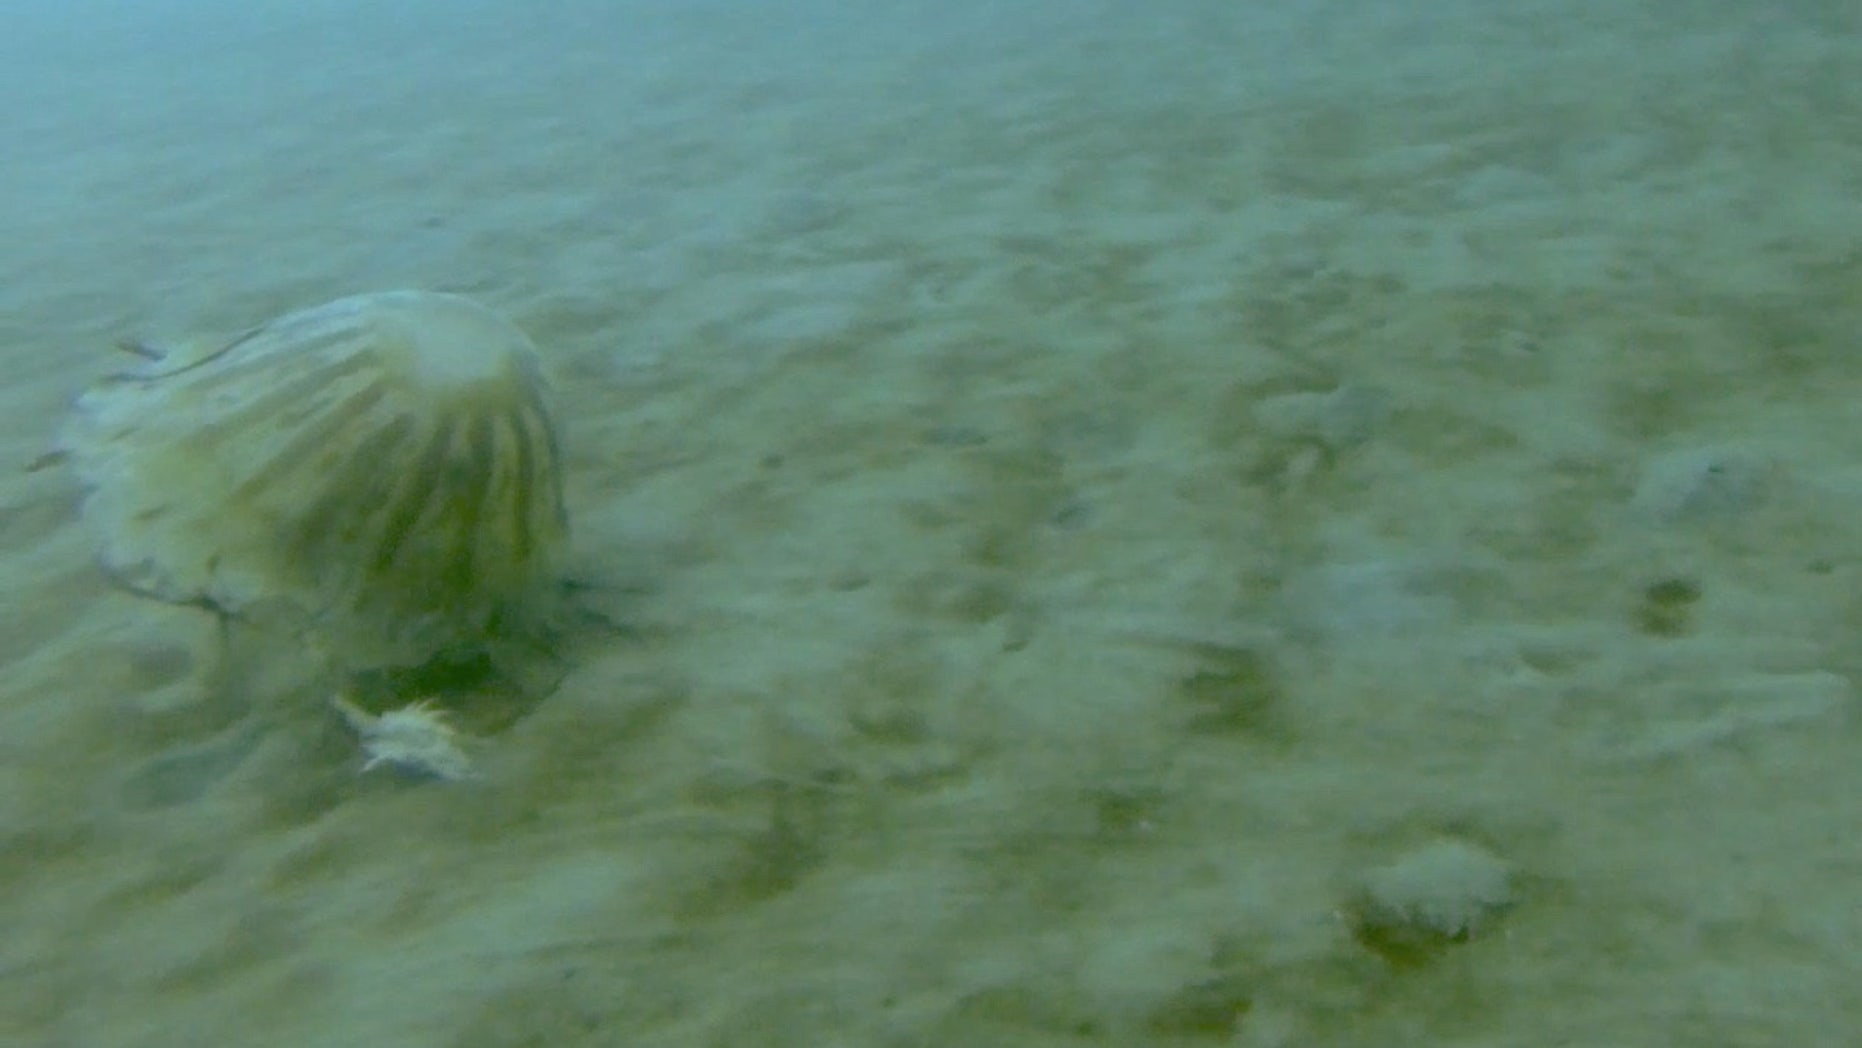 Scientists spotted this huge jellyfish (<em>Chrysaora melanaster</em>) dragging a crustacean with one of its tentacles under the sea ice covering the Chukchi Sea off the north coast of Alaska.